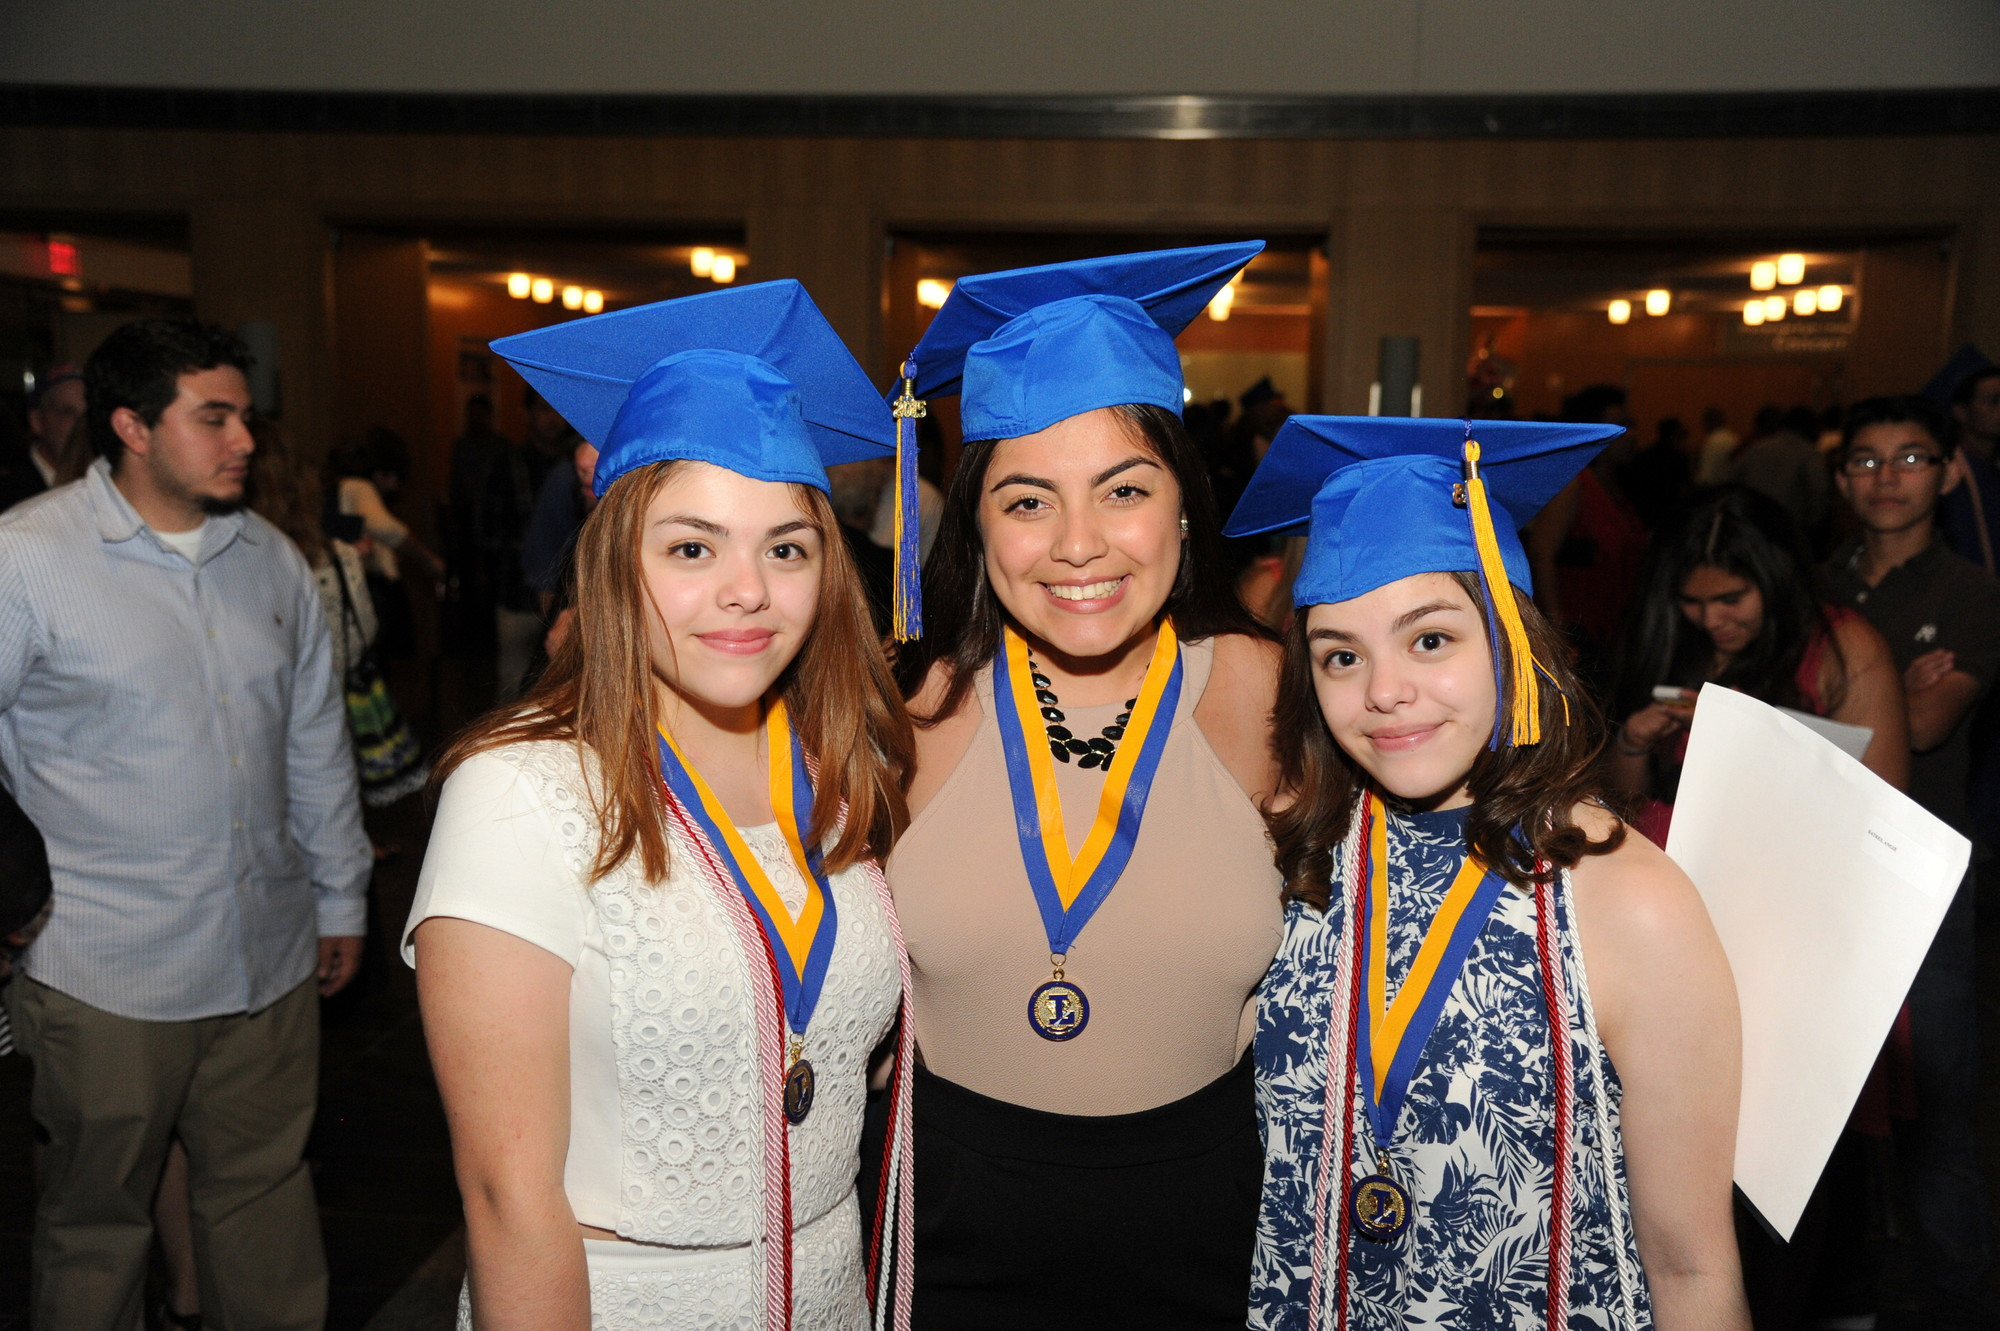 Siblings and Friends Janice Estrade, Anhie Batres and Ivette Estrada after graduation.